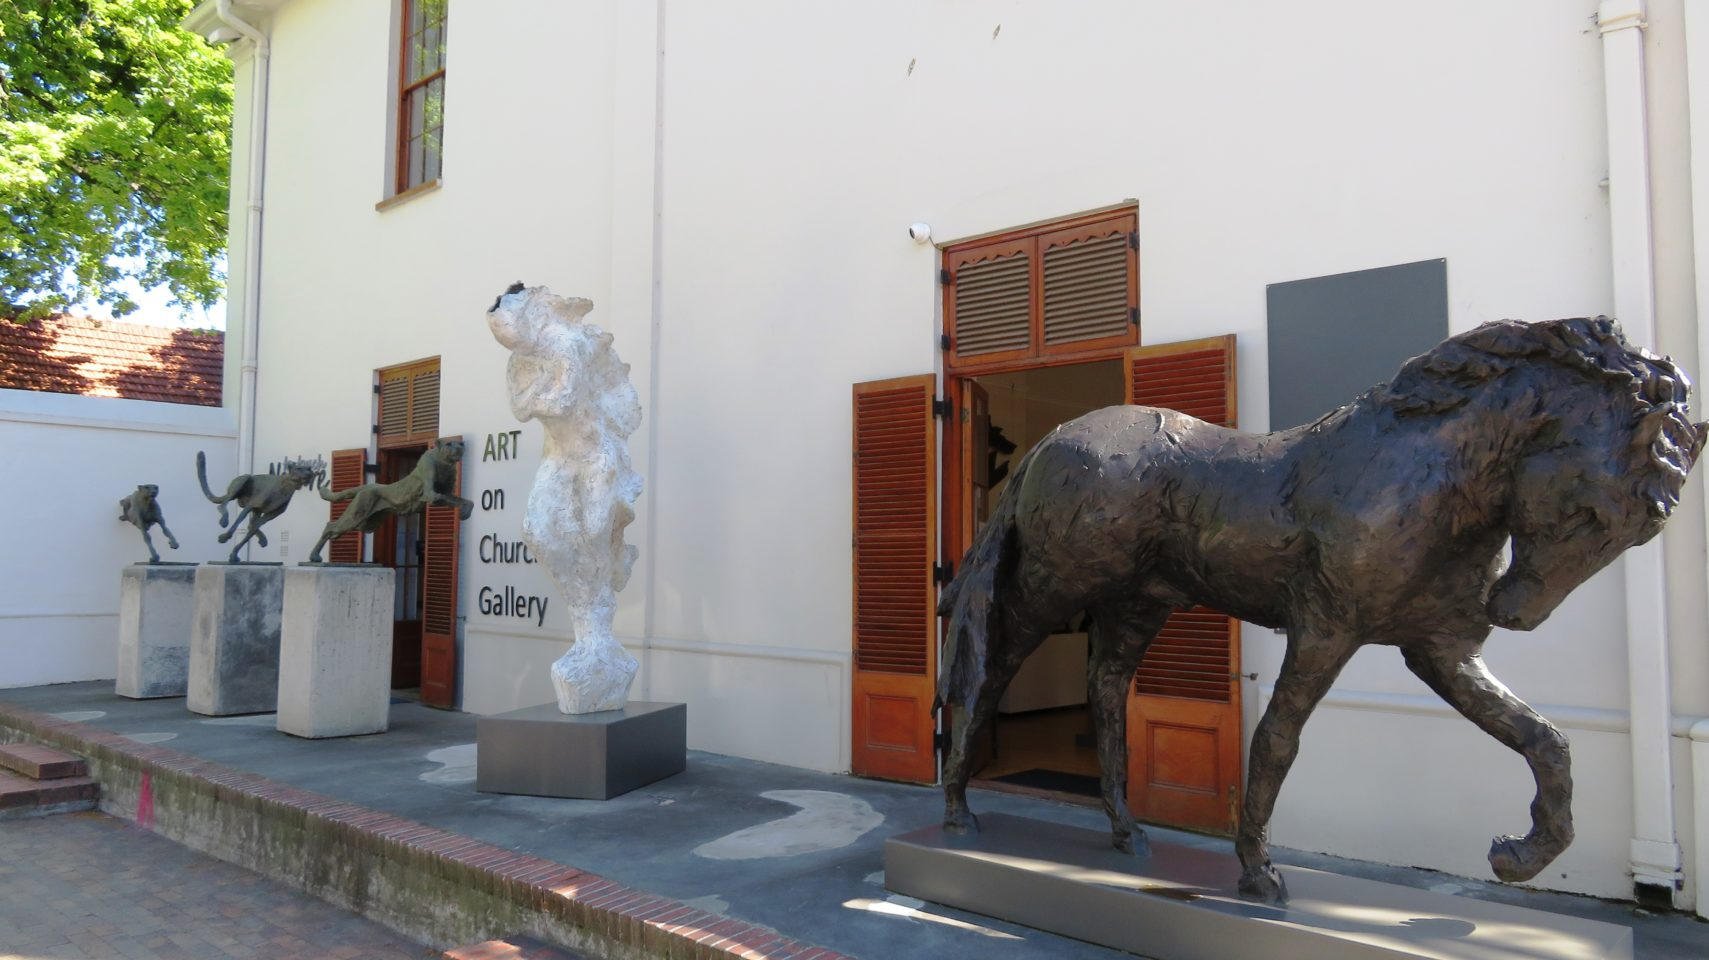 Art Gallery in Stellenbosch, South Africa